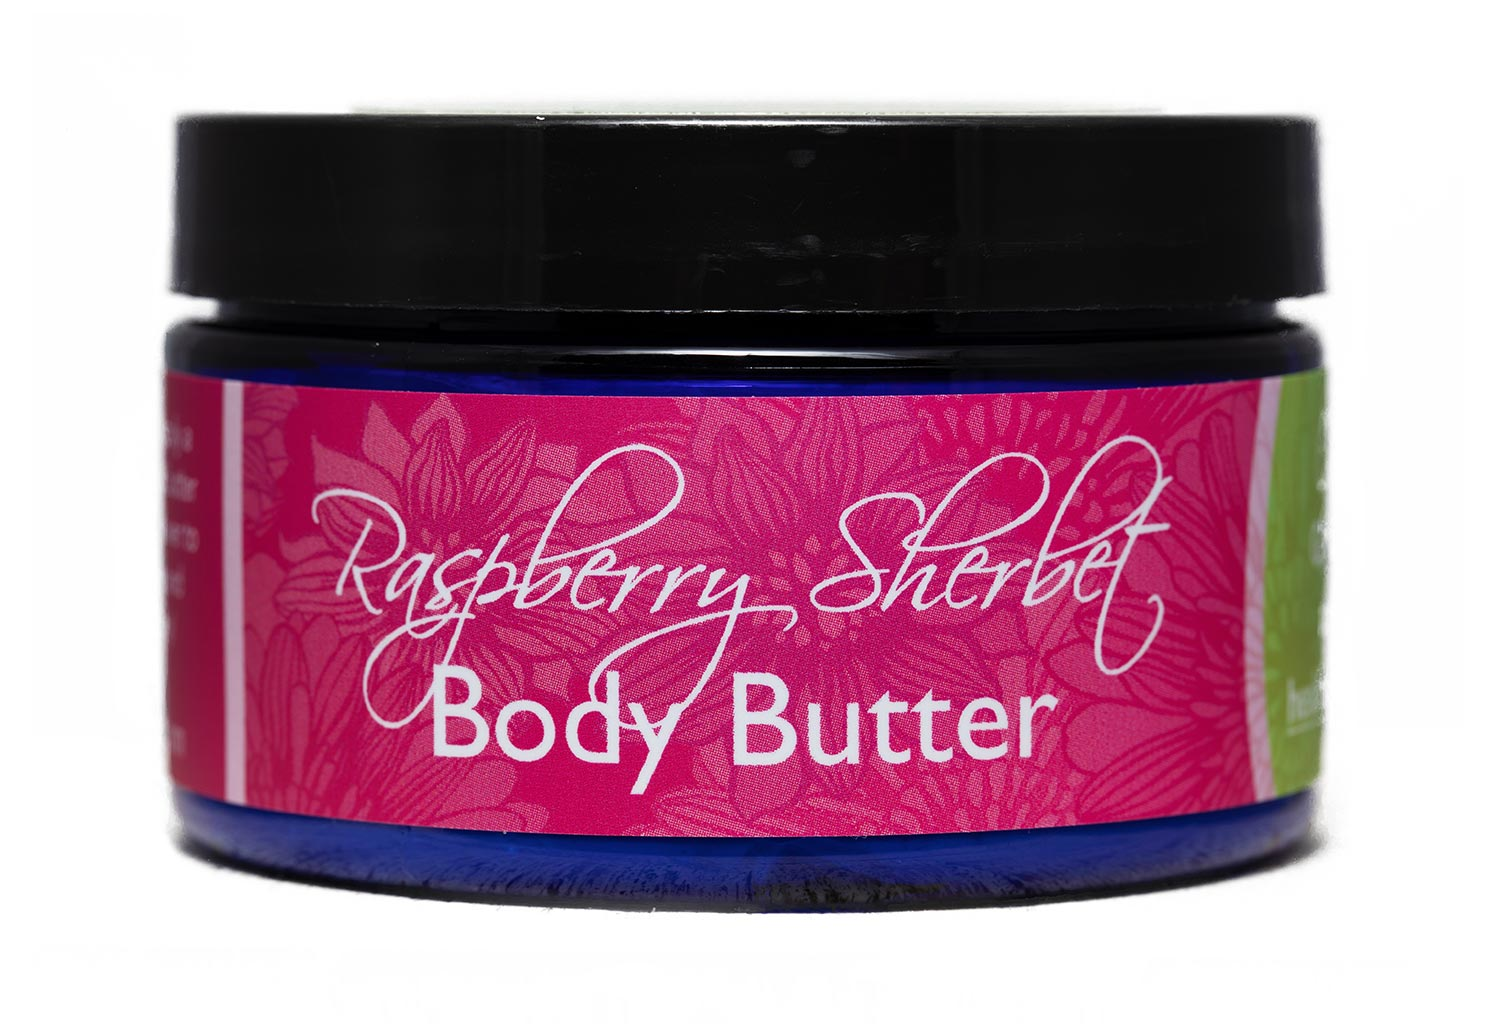 Raspberry Sherbet Body Butter